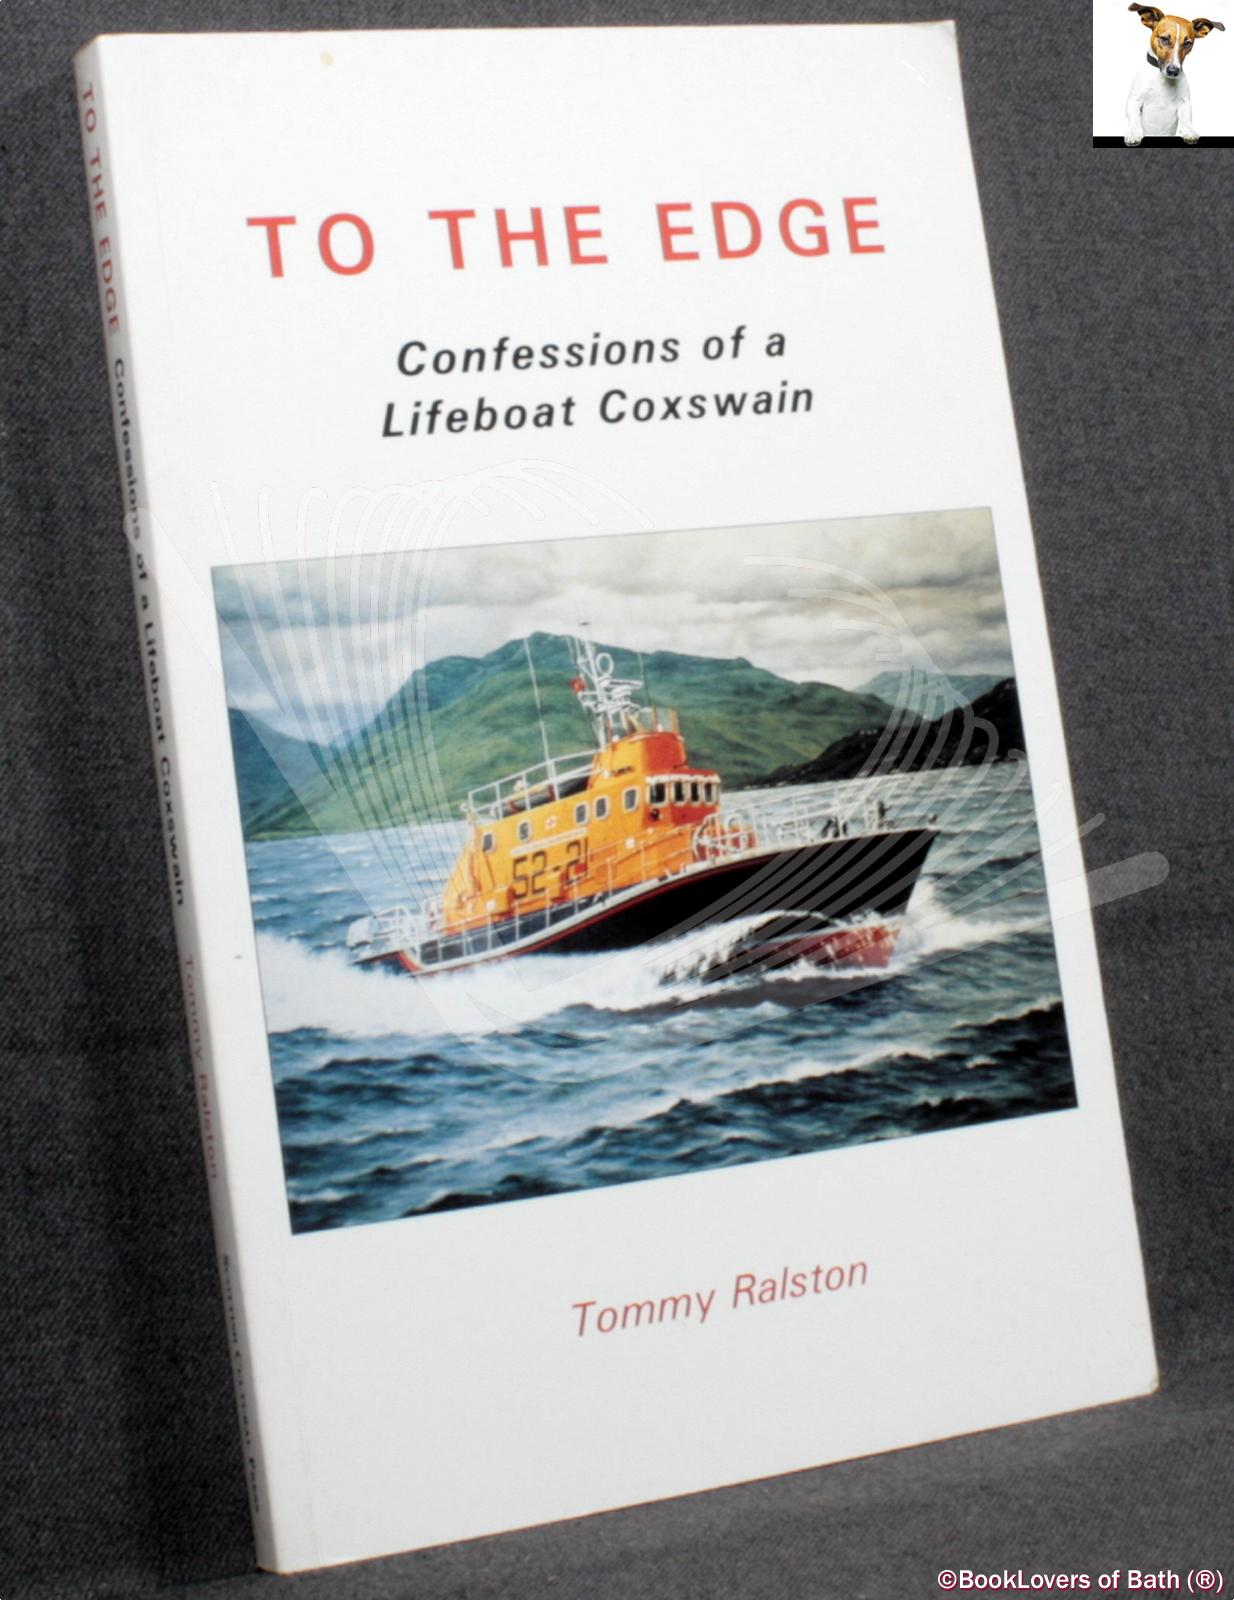 To the Edge: Confessions of a Lifeboat Coxswain - Tommy Ralston